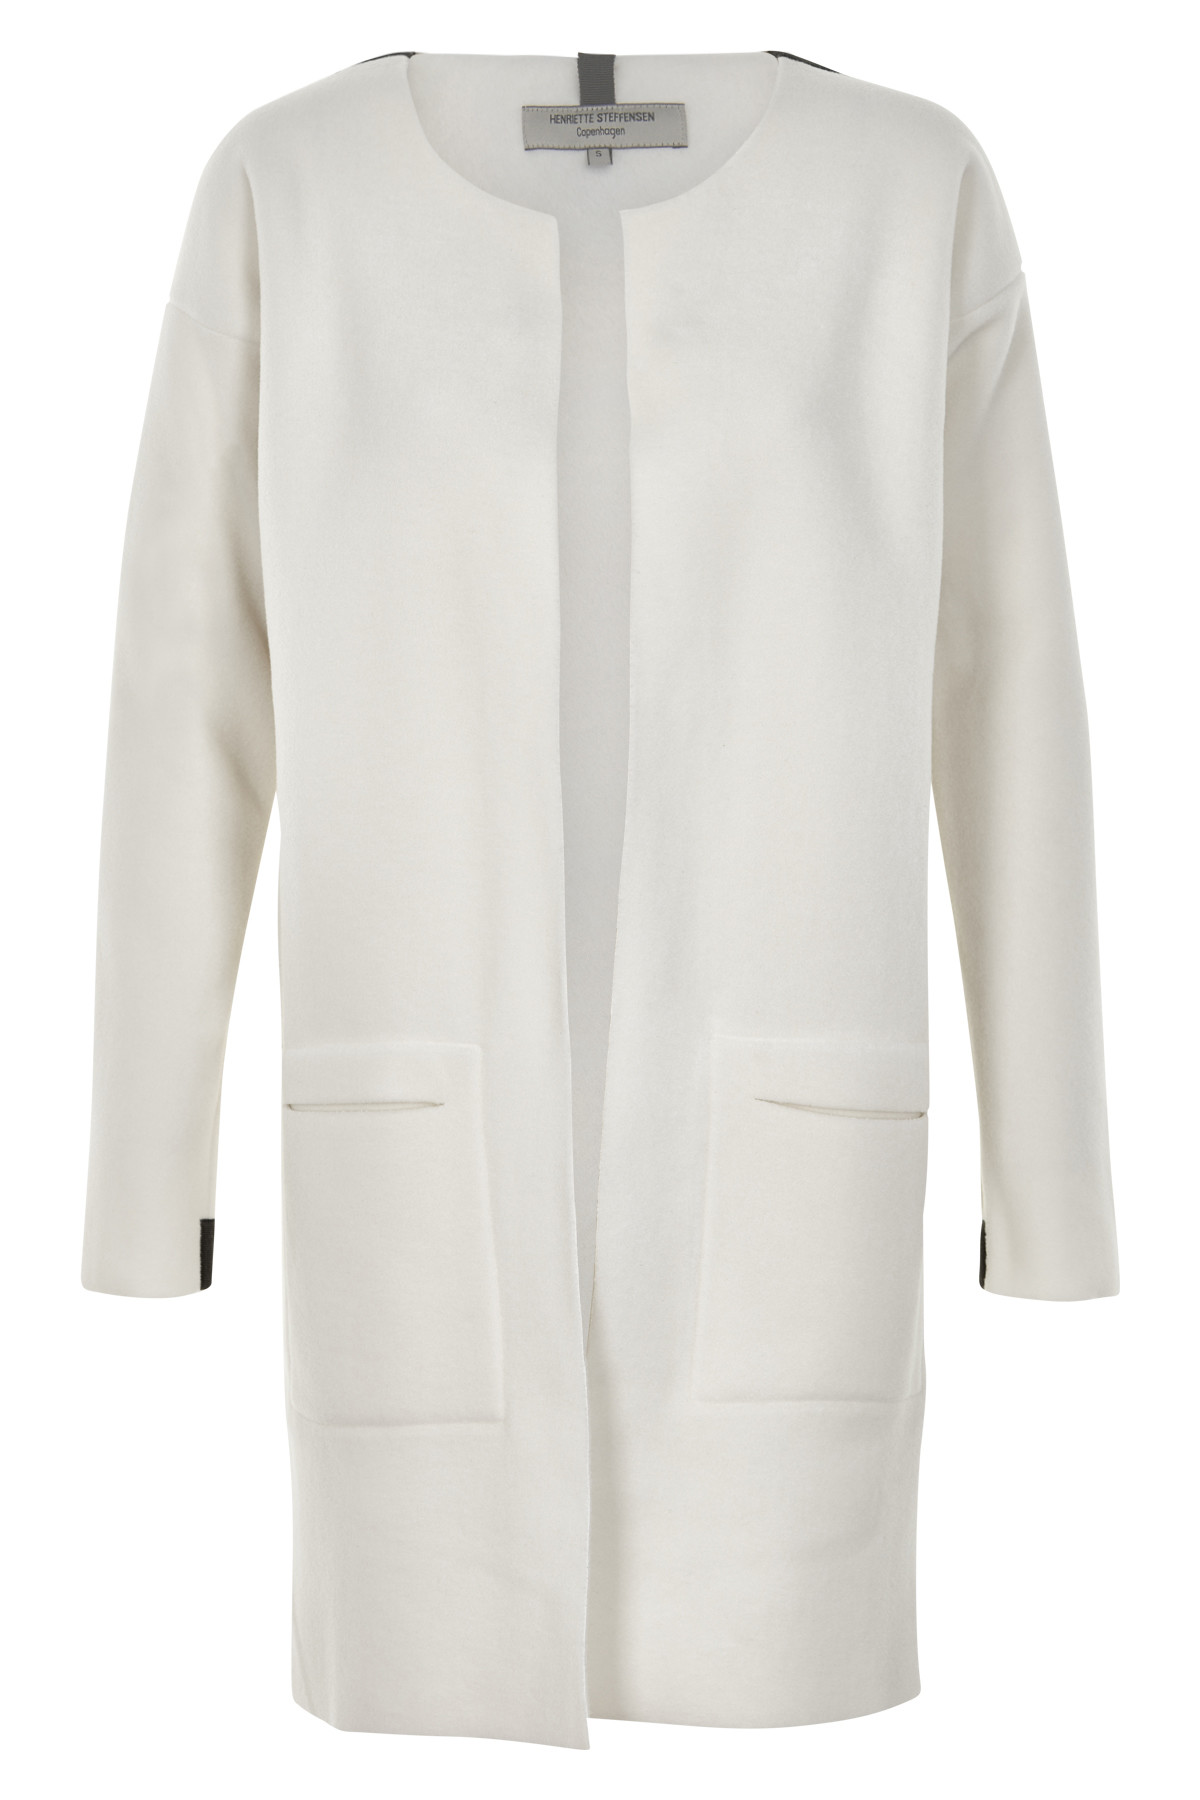 Image of   HENRIETTE STEFFENSEN Copenhagen 7104 CARDIGAN LONG OFF WHITE (Off White, XL)